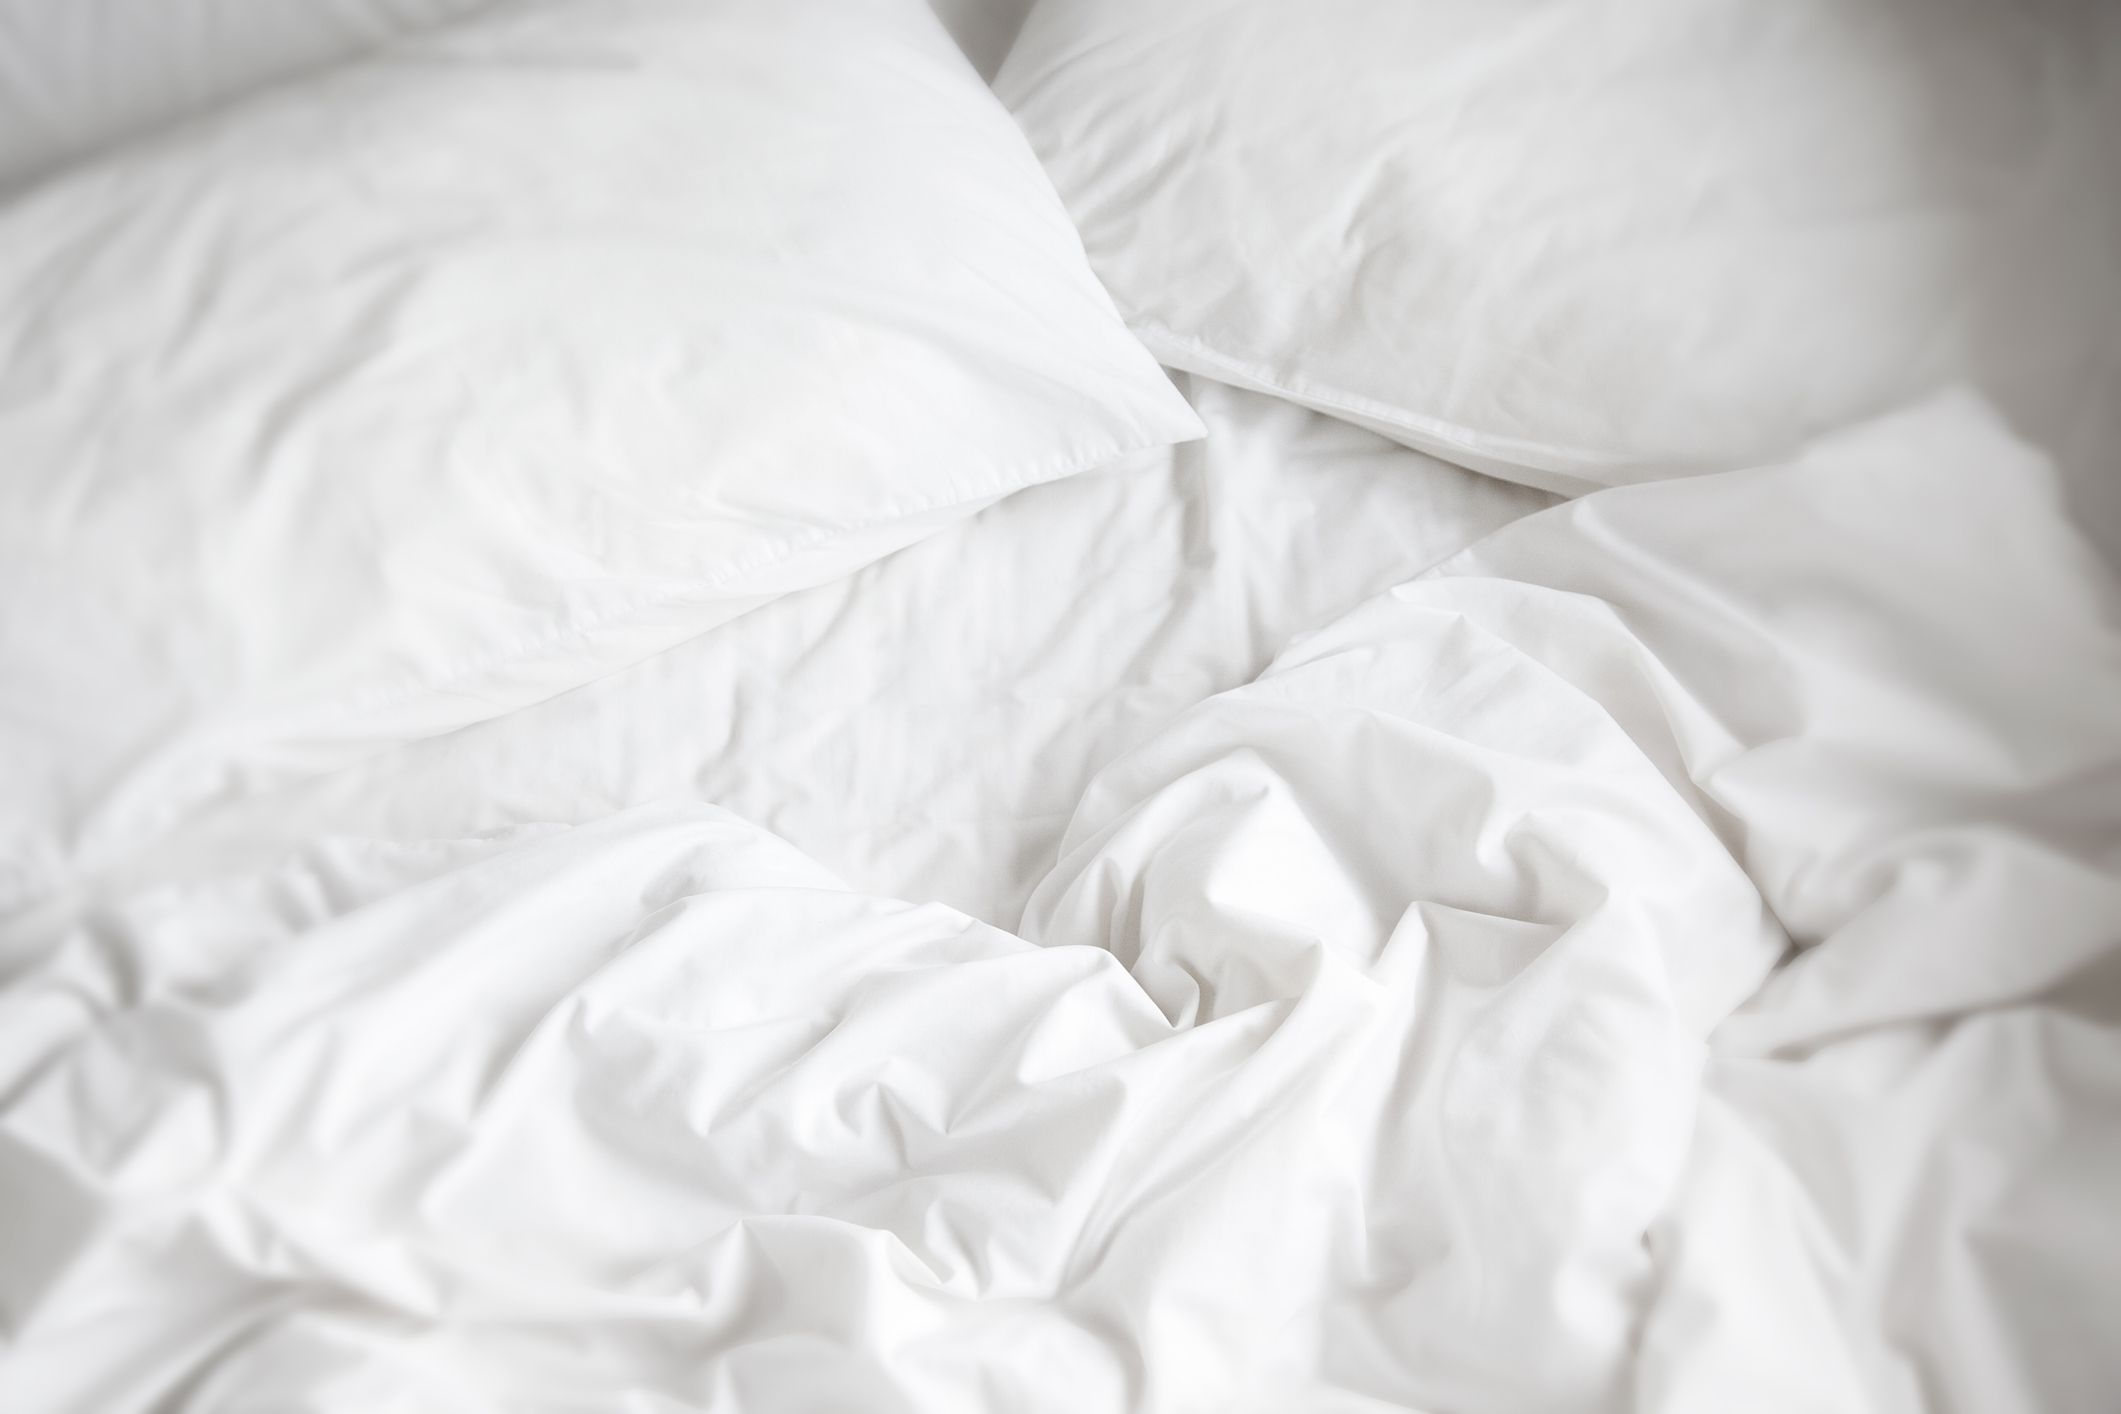 white bed sheets, pillows, and comforter.